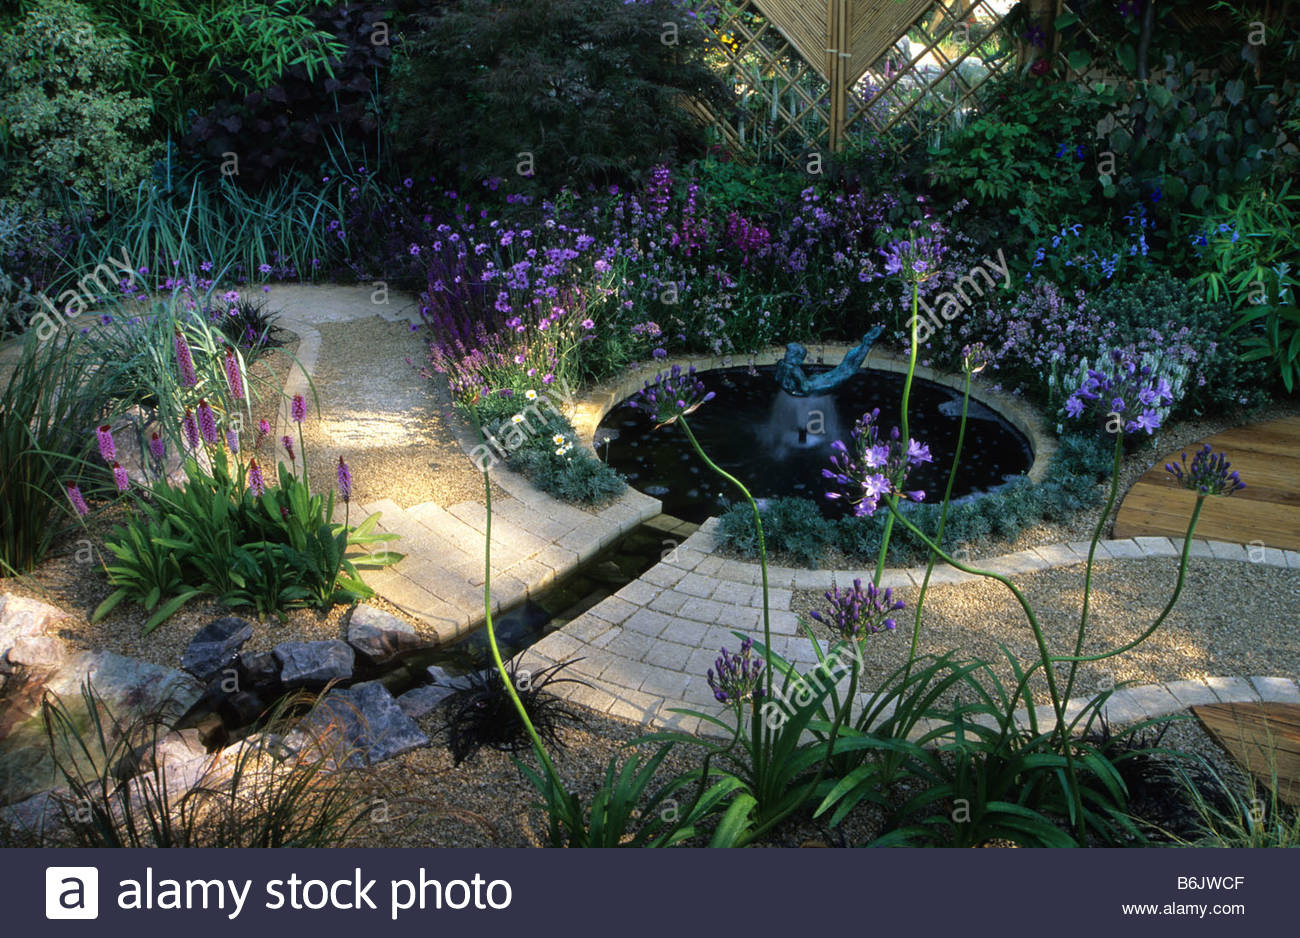 Superb Feng Shui Garden Design Pamela Woods Formal Circular Pool With Sculptural  Fountian Winding Path And Cool Colour Planting